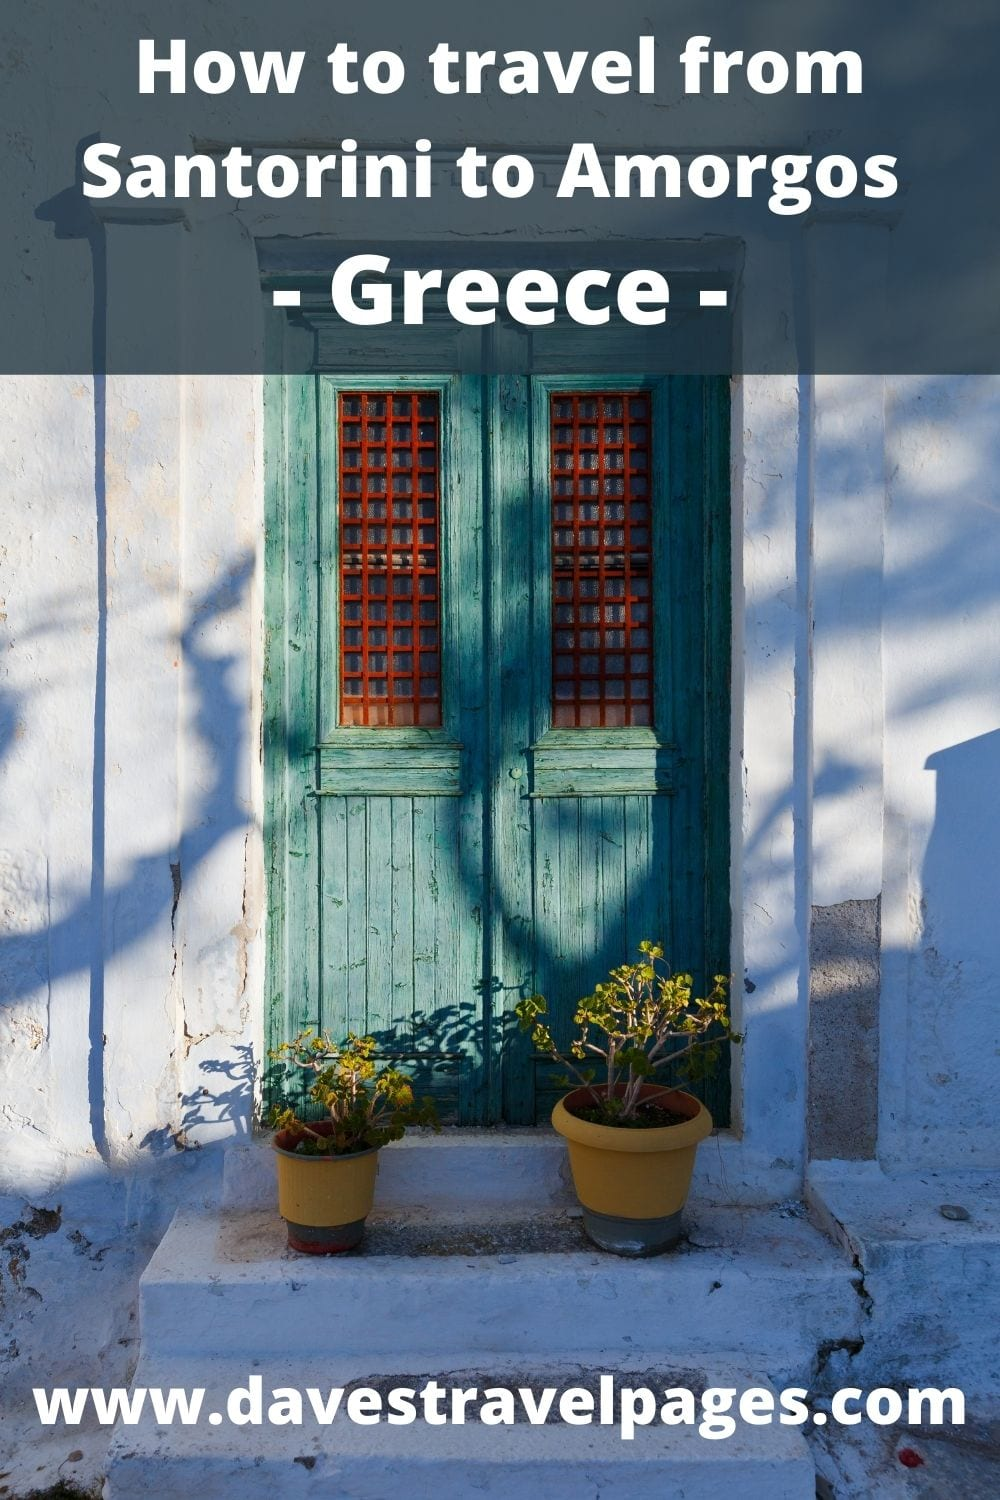 How to travel by ferry from Santorini to Amorgos in Greece